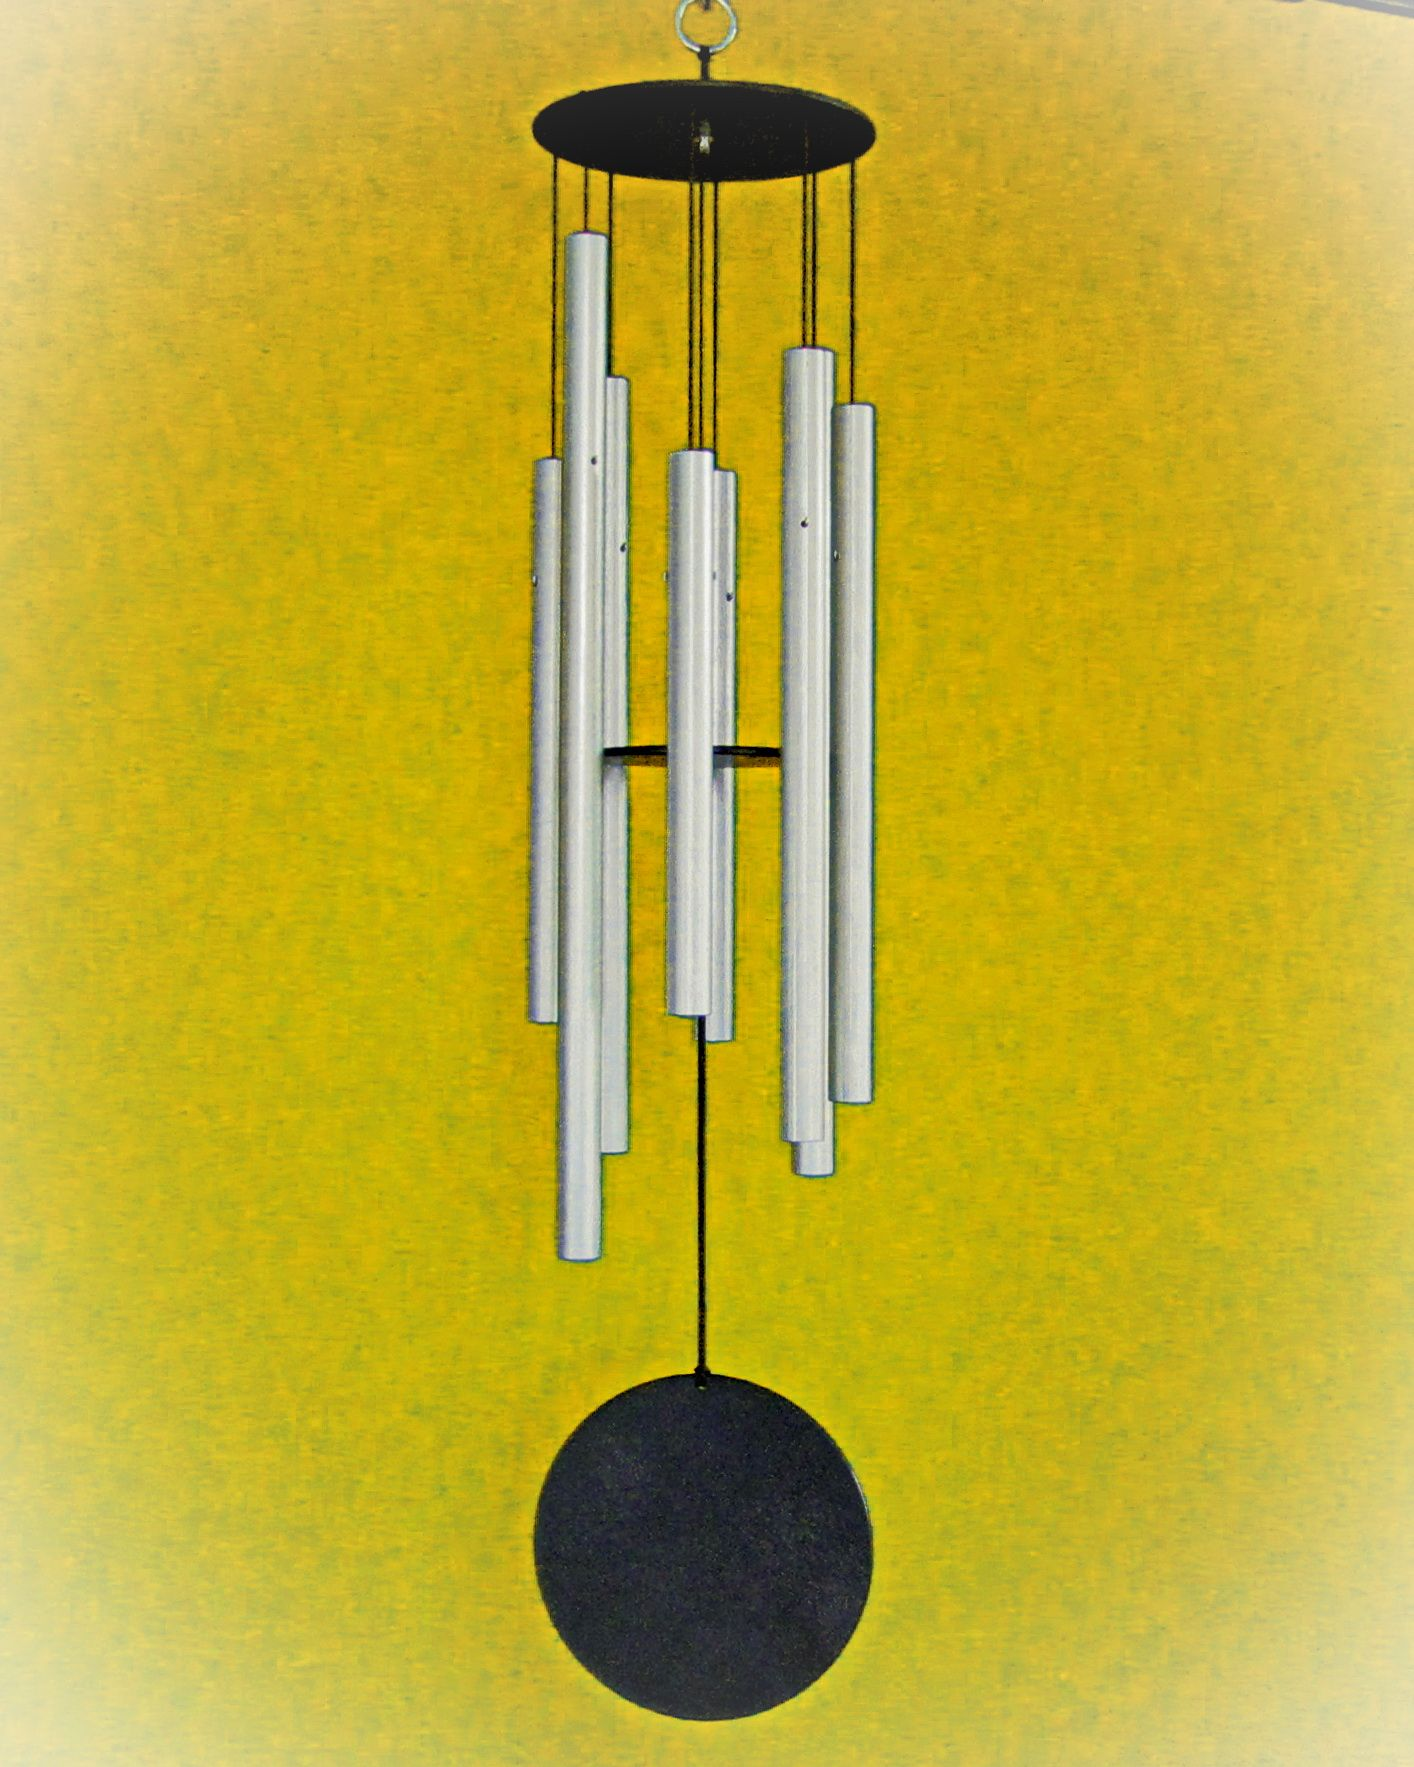 Westminster Quarters Wind Chime Sounds The Four Tones In 2 Higher